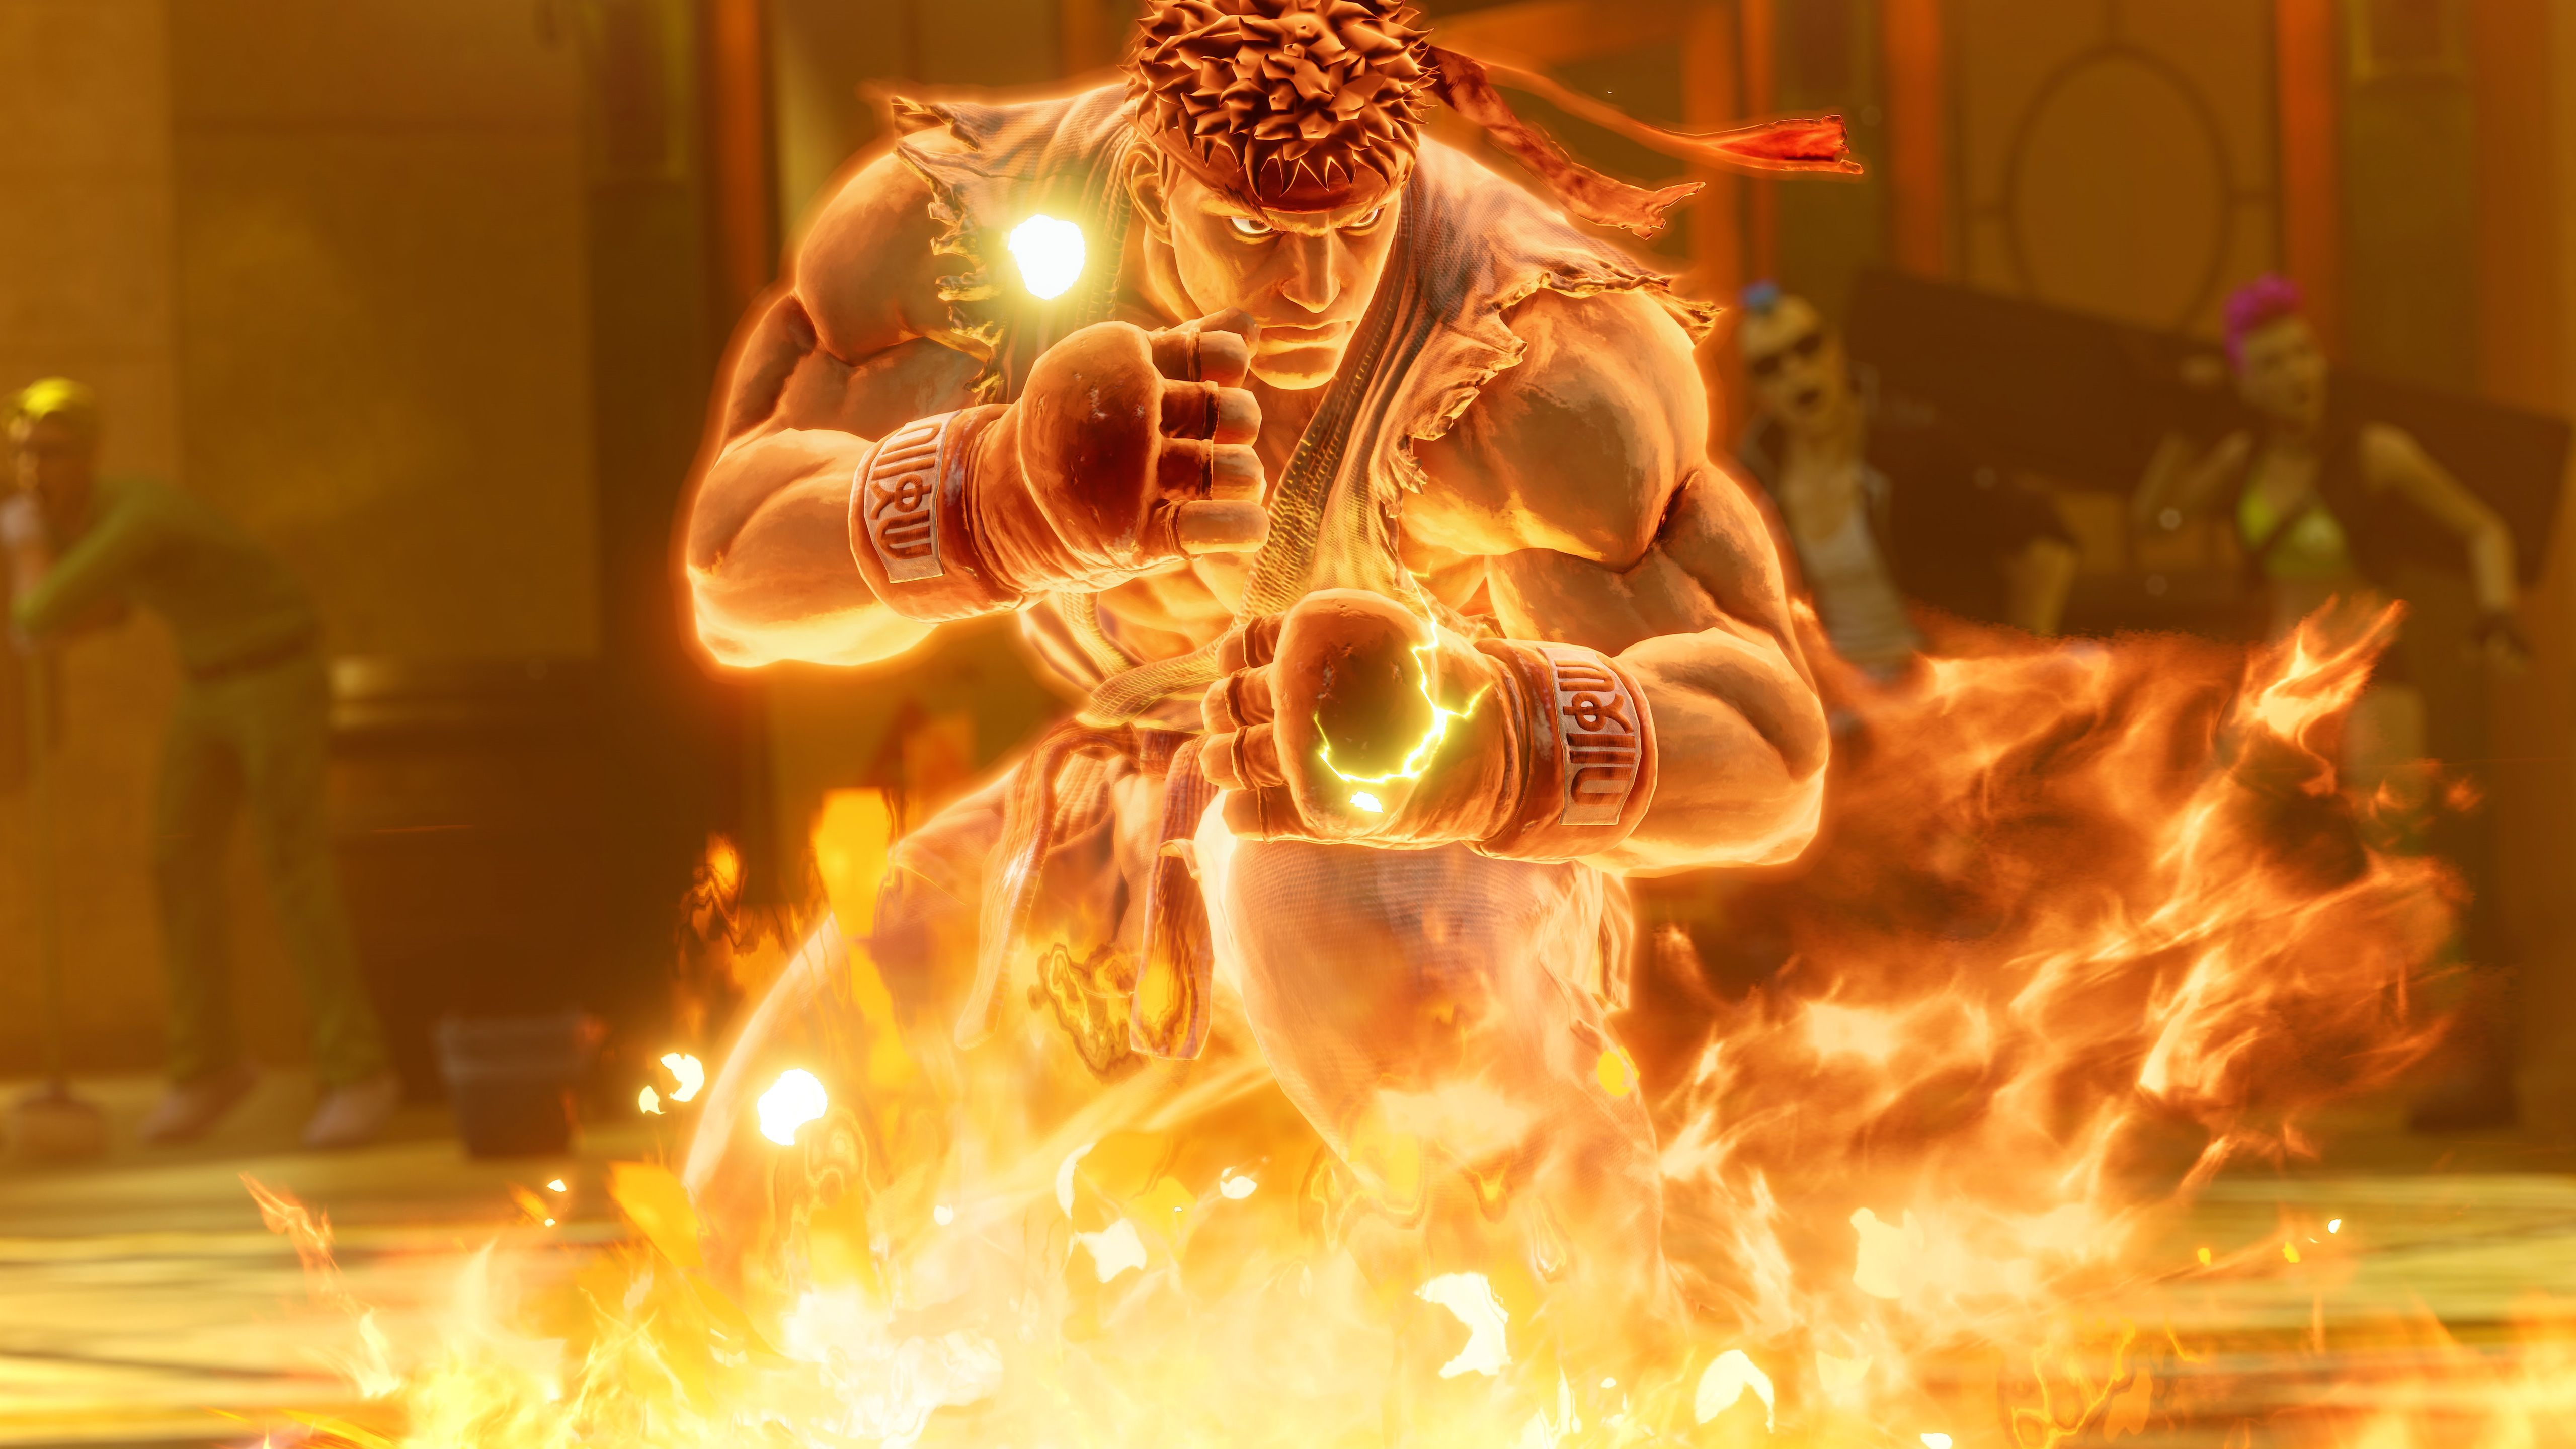 Fighter 5k Wallpapers Top Free Fighter 5k Backgrounds